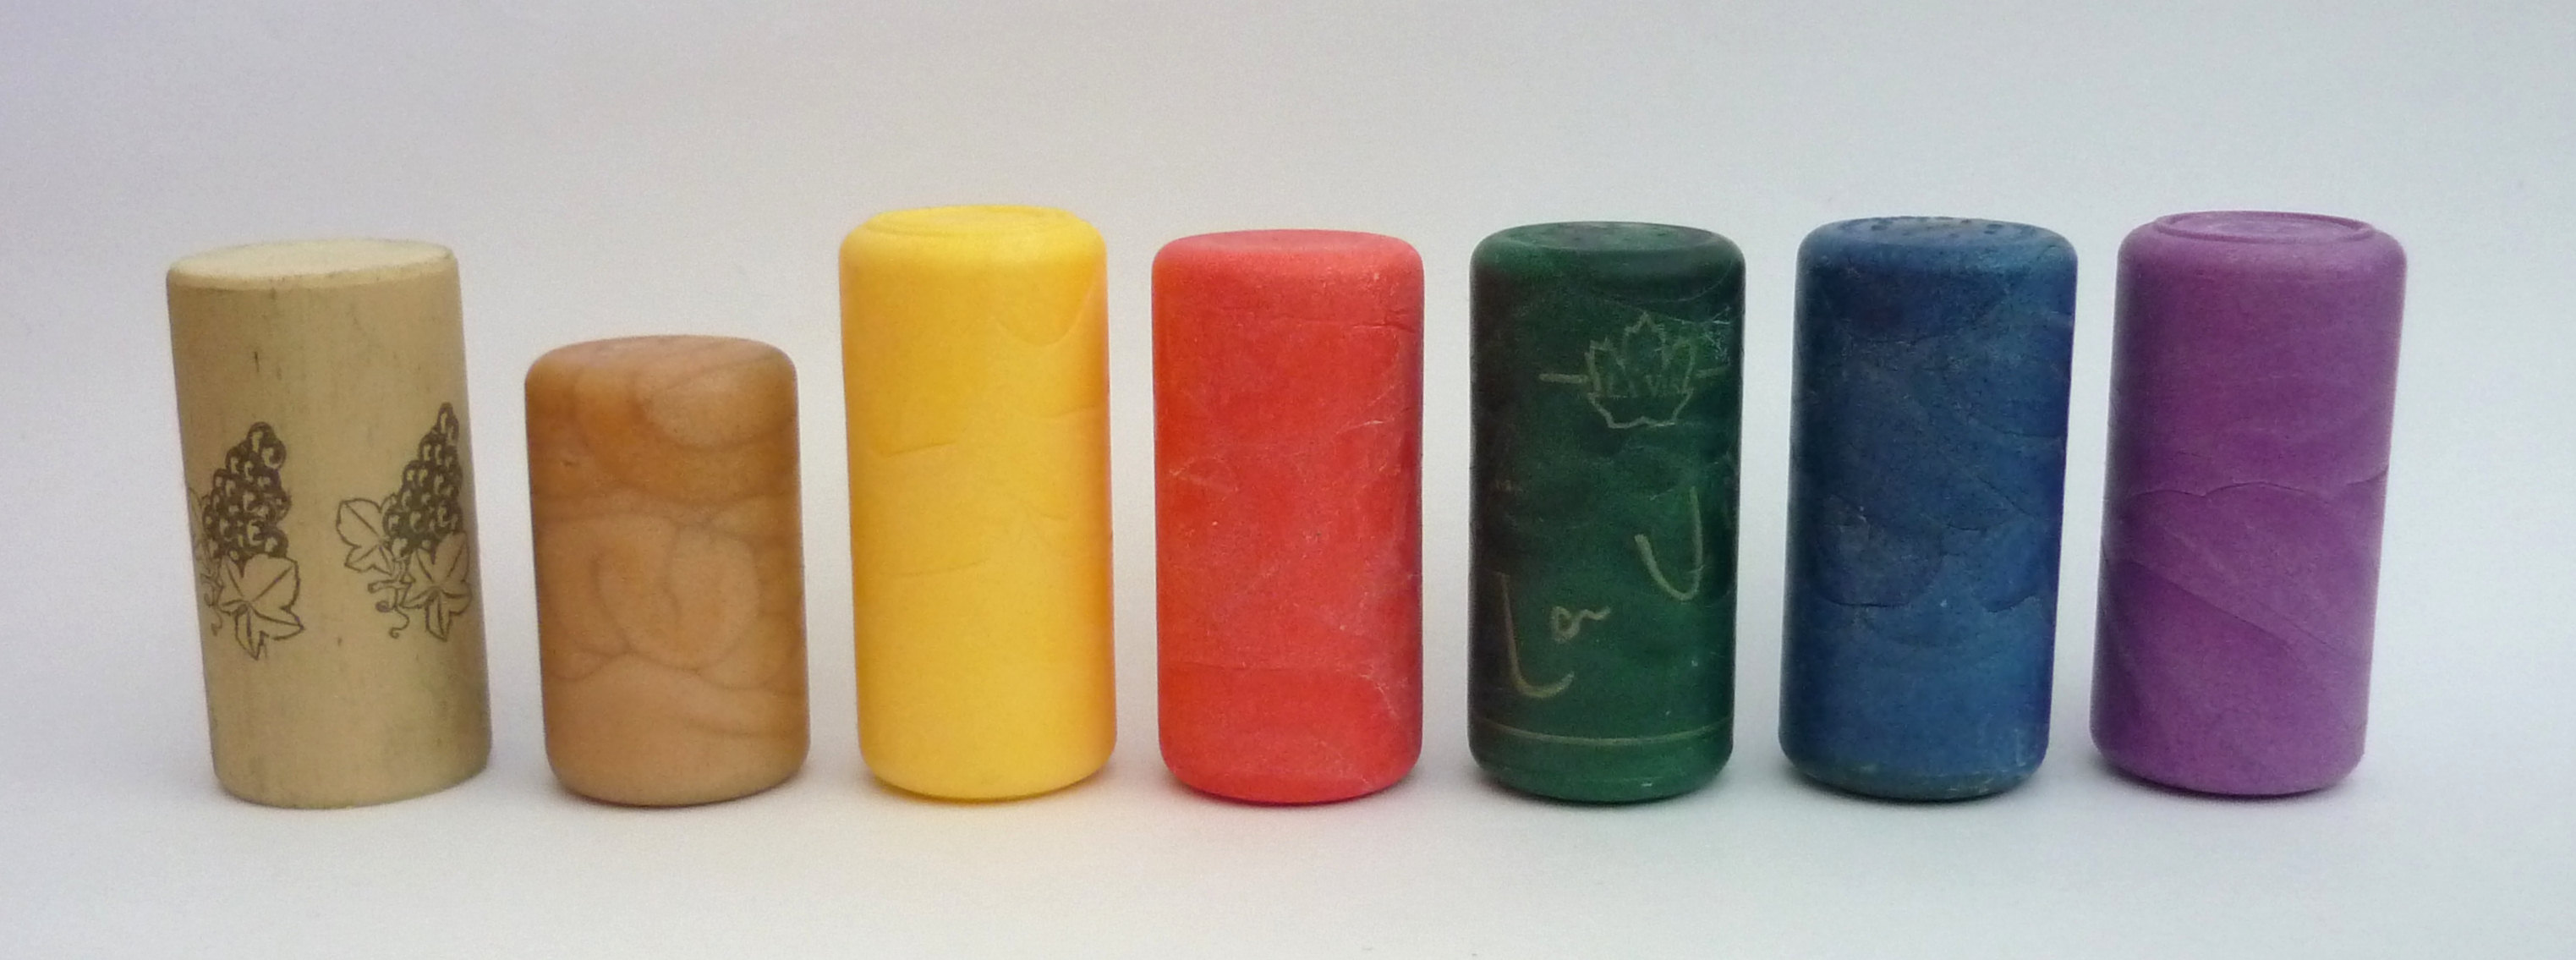 Petrochemical based synthetic corks